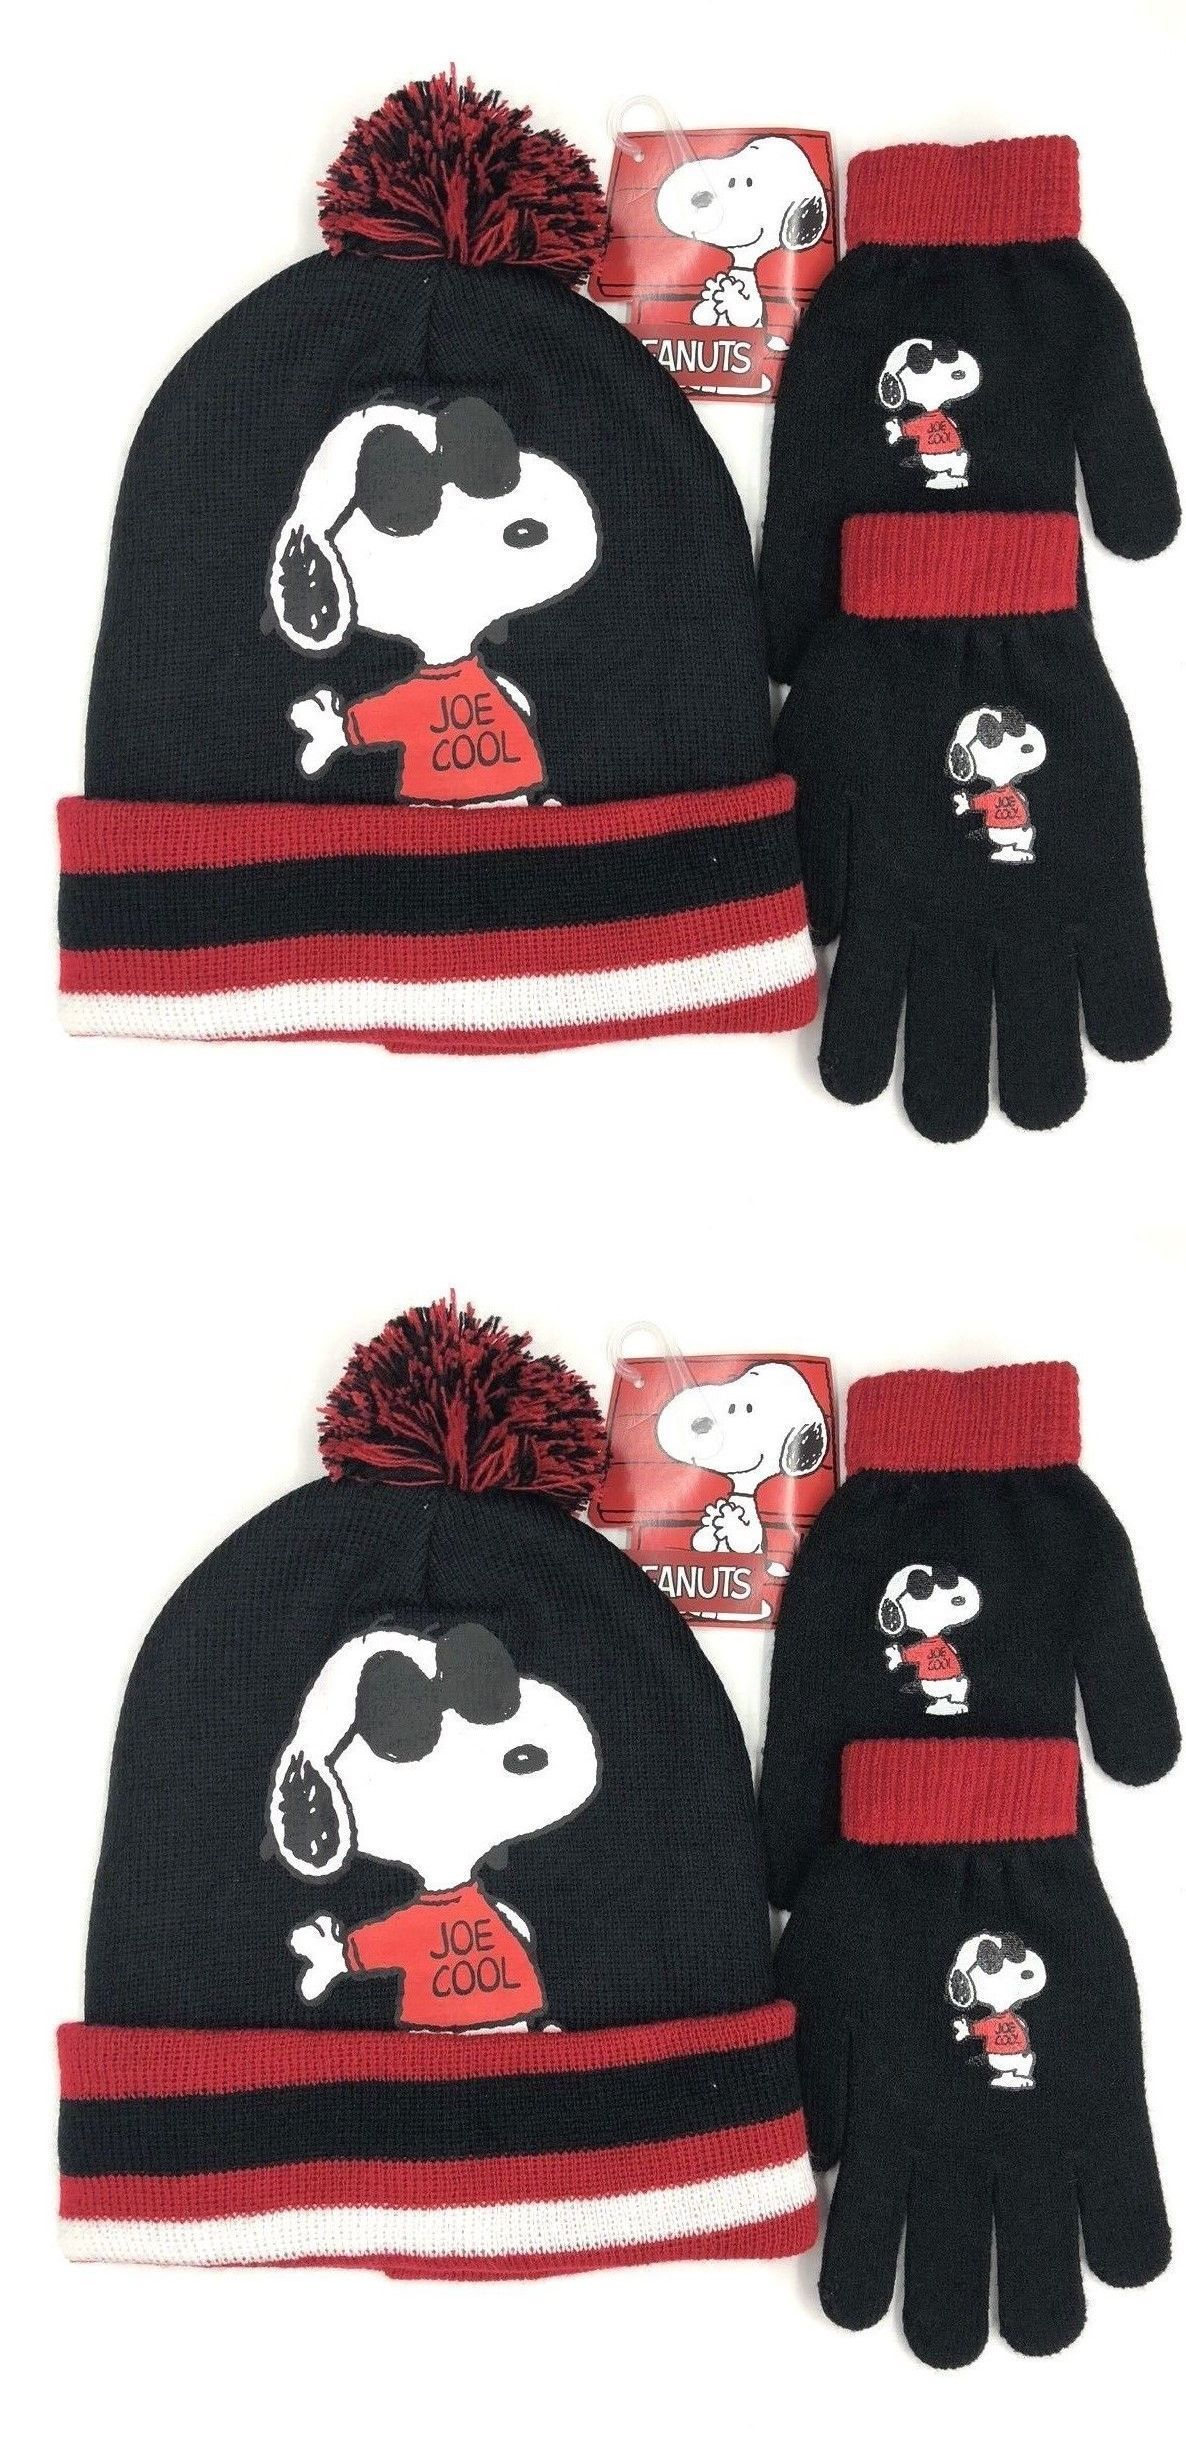 8a7104926df88e Hats 57884: Peanuts Snoopy Winter Hat With Gloves Set -> BUY IT NOW ONLY:  $14.99 on #eBay #peanuts #snoopy #winter #gloves